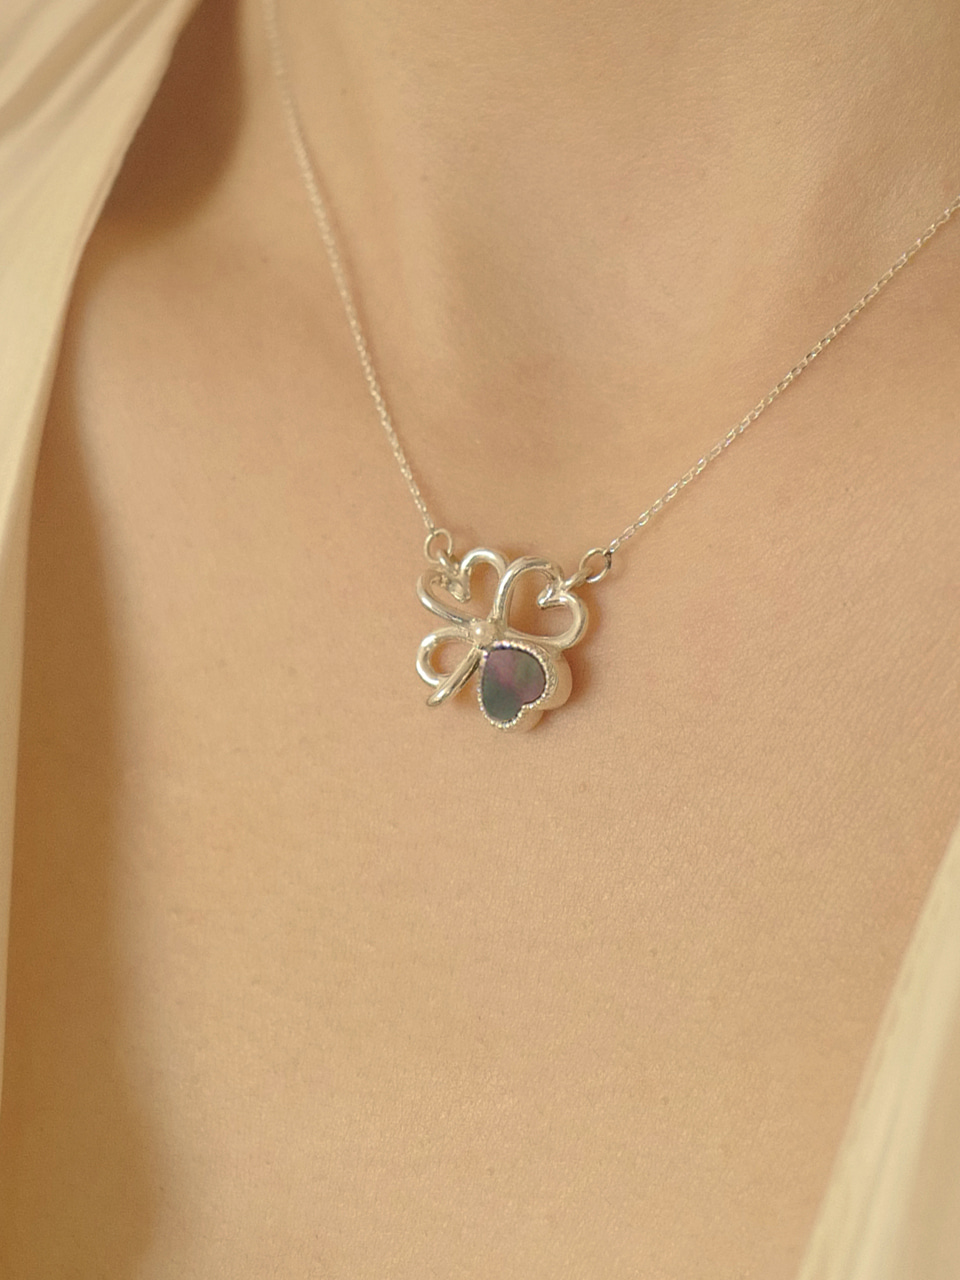 Heart Clover Necklace Silver